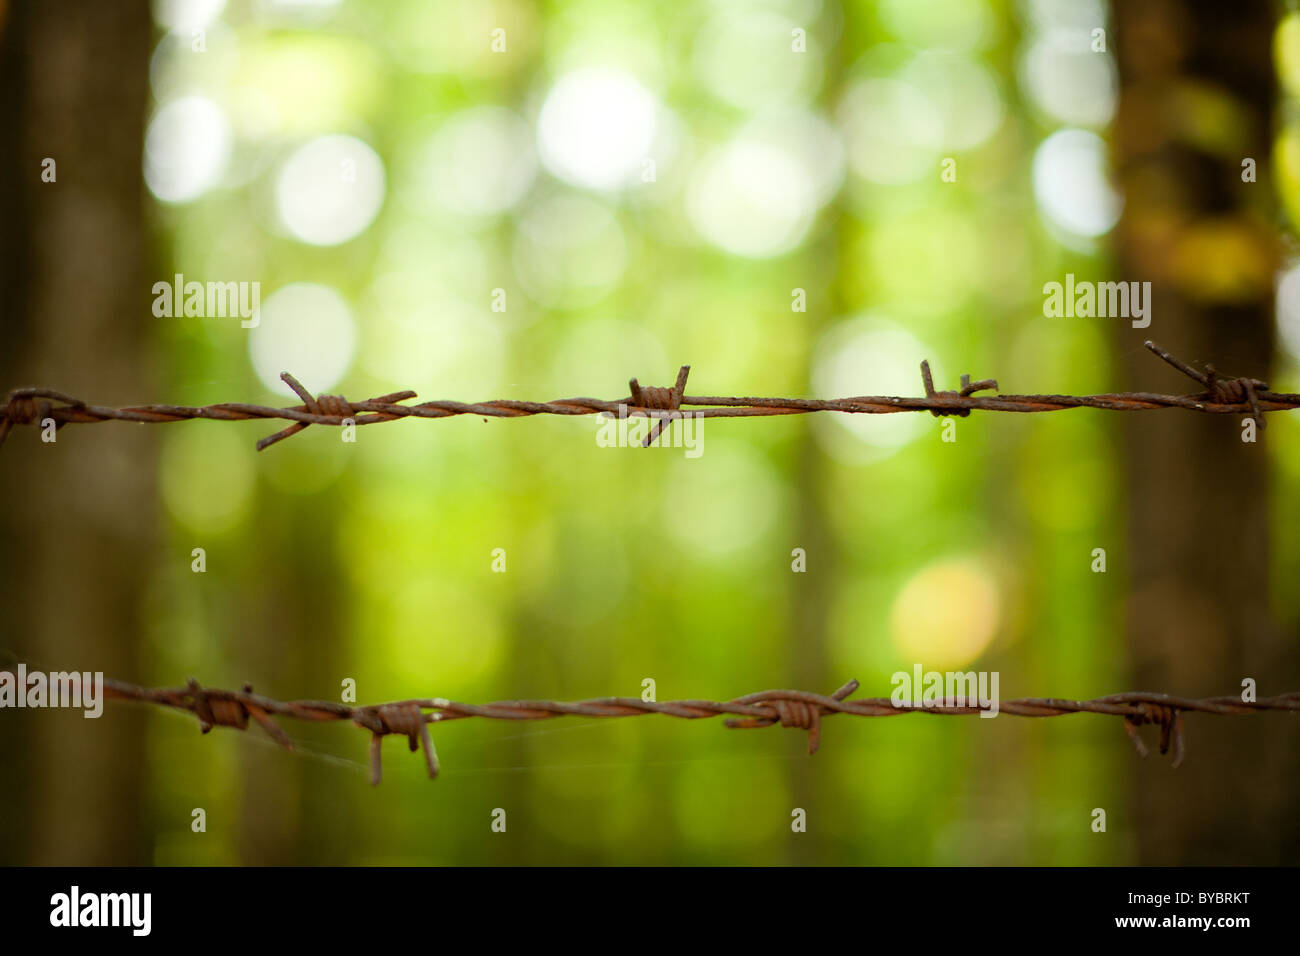 Close up of rusty barb wire over green background - Stock Image